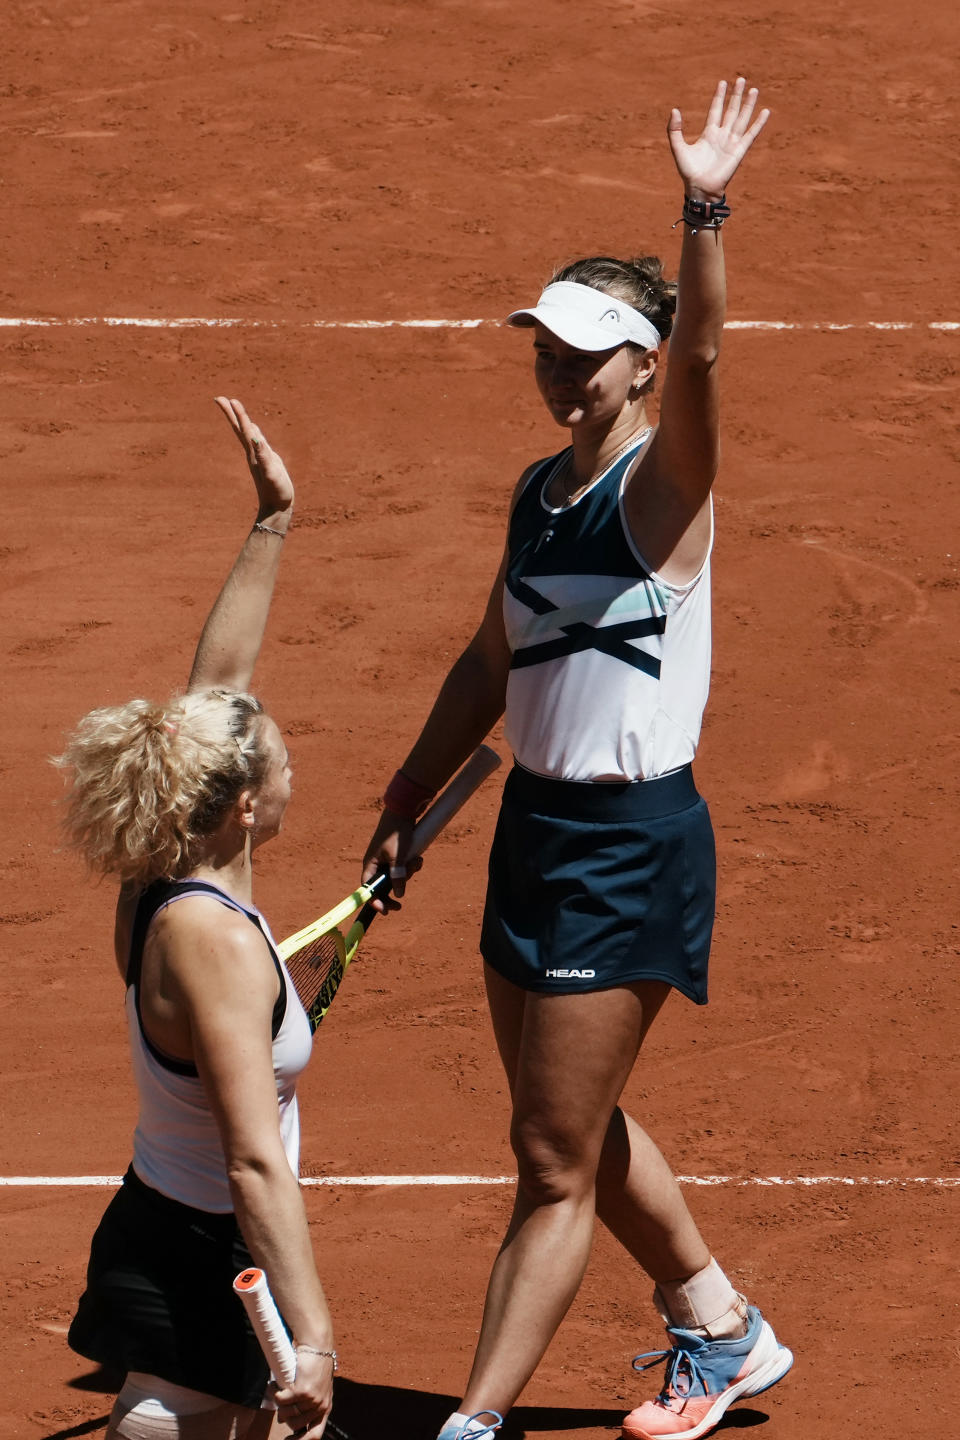 Czech Republic's Barbora Krejcikova, right, and compatriot Katerina Siniakova wave after they defeating USA's Bethanie Mattek-Sands and Poland's Iga Swiatek during their women's doubles final match of the French Open tennis tournament at the Roland Garros stadium Sunday, June 13, 2021 in Paris. (AP Photo/Thibault Camus)